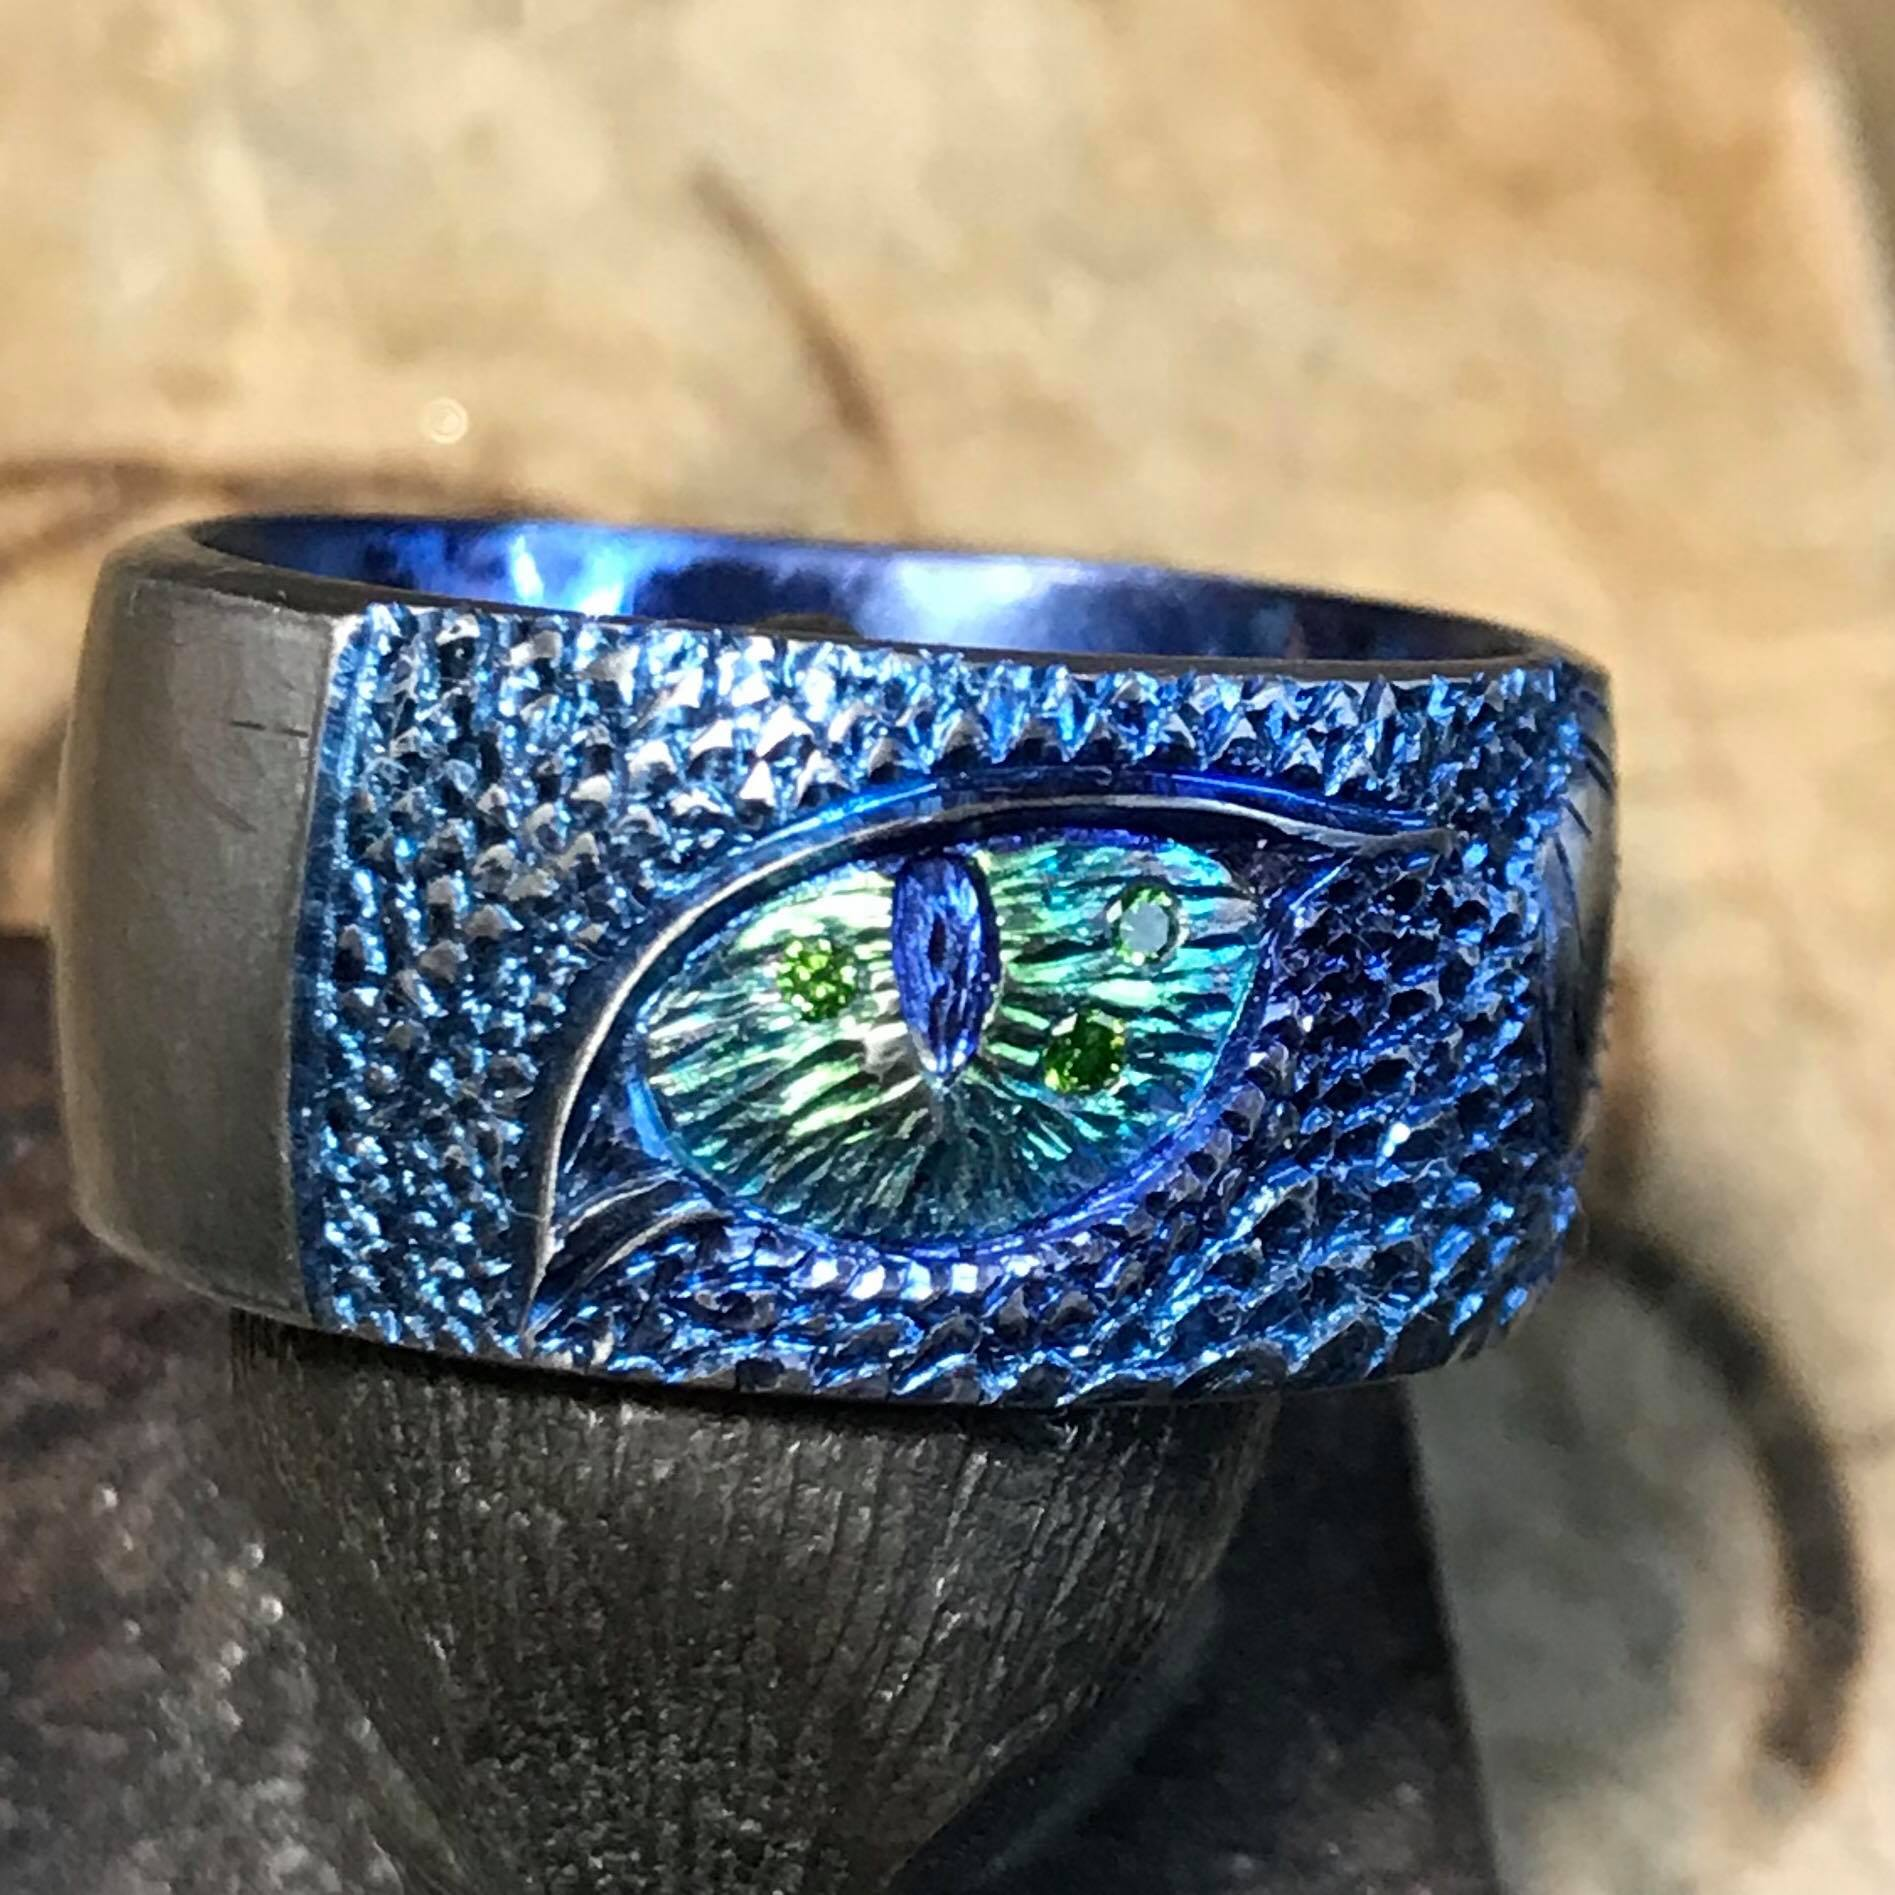 One of a Kind Titanium Designs - Unlike Any you have seen before